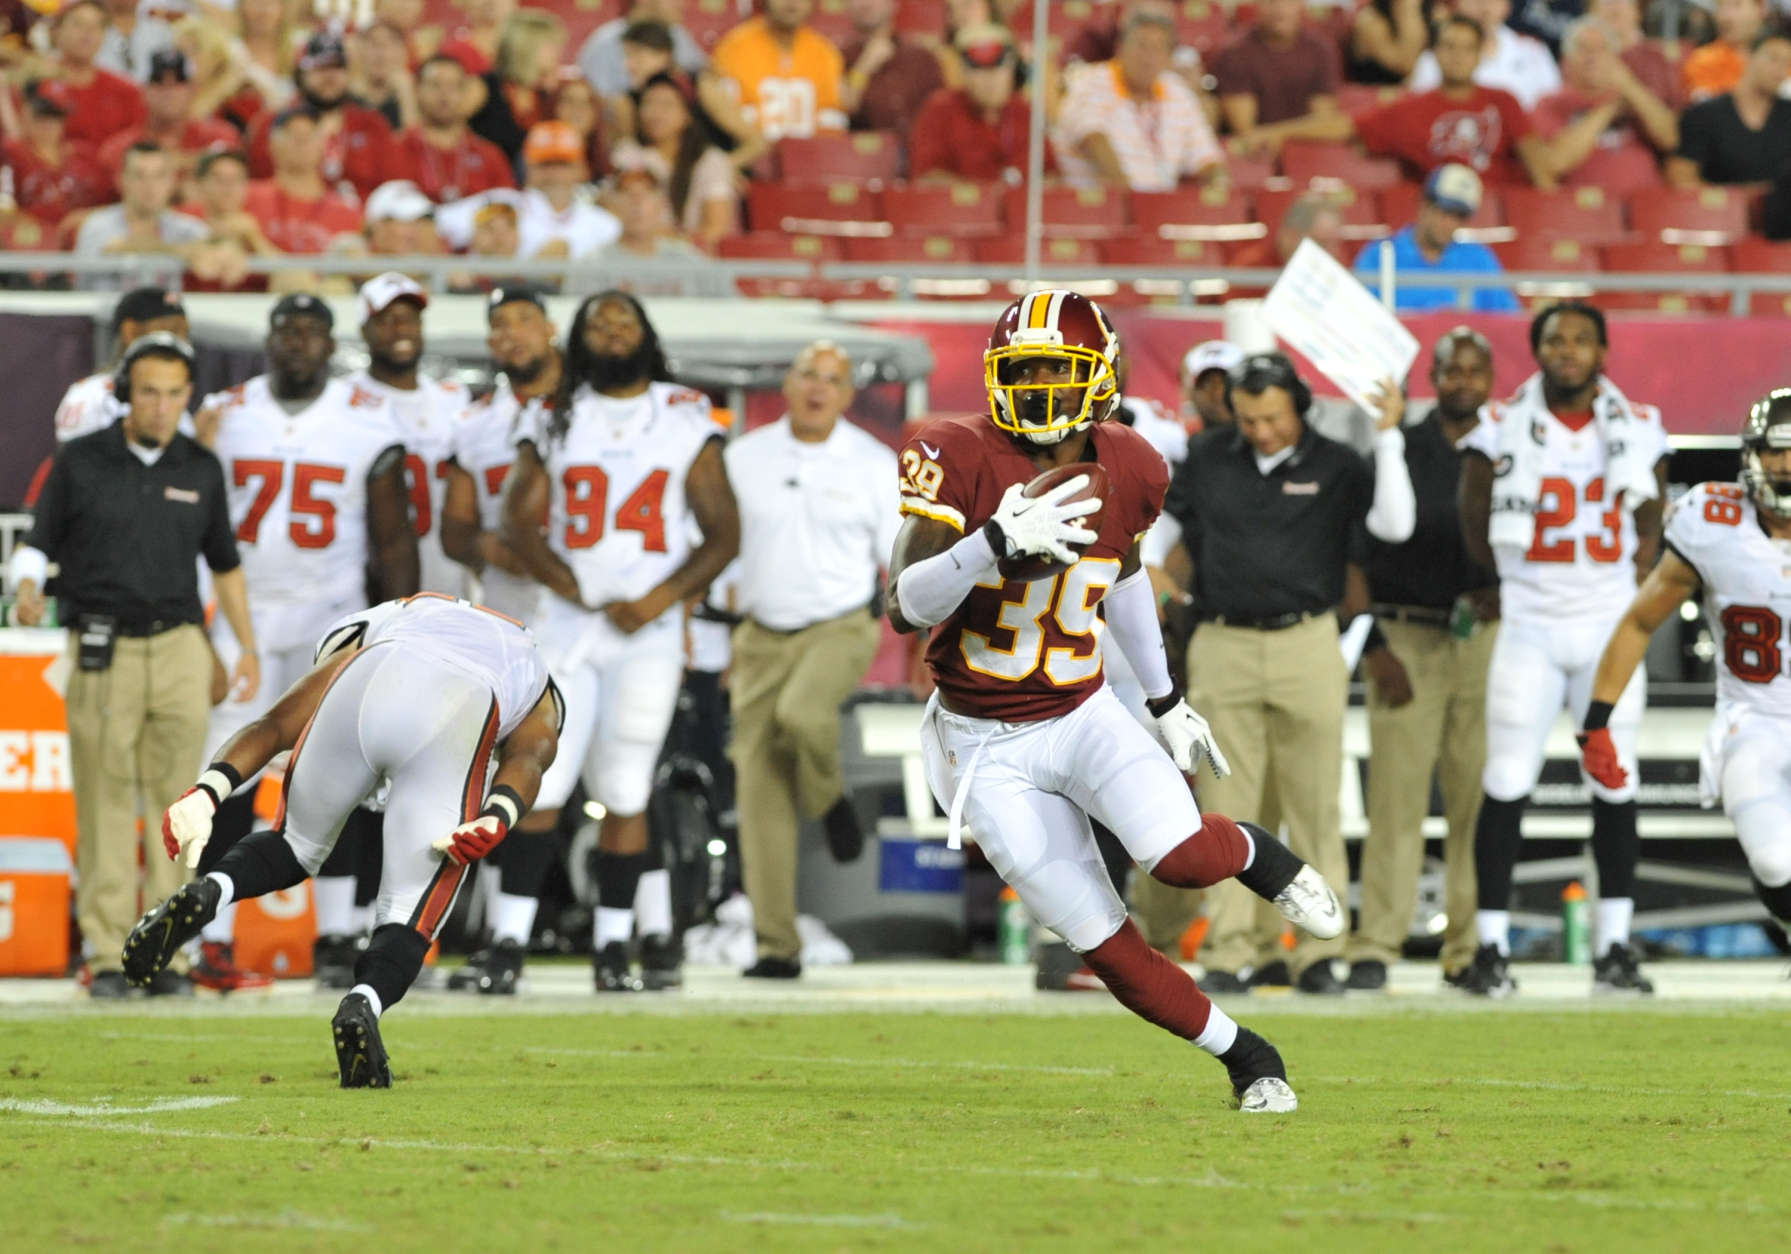 TAMPA, FL -  AUGUST 29:  Cornerback David Amerson #39 of the Washington Redskins runs upfield with an interception against the Tampa Bay Buccaneers August 29, 2013 at Raymond James Stadium in Tampa, Florida. (Photo by Al Messerschmidt/Getty Images)